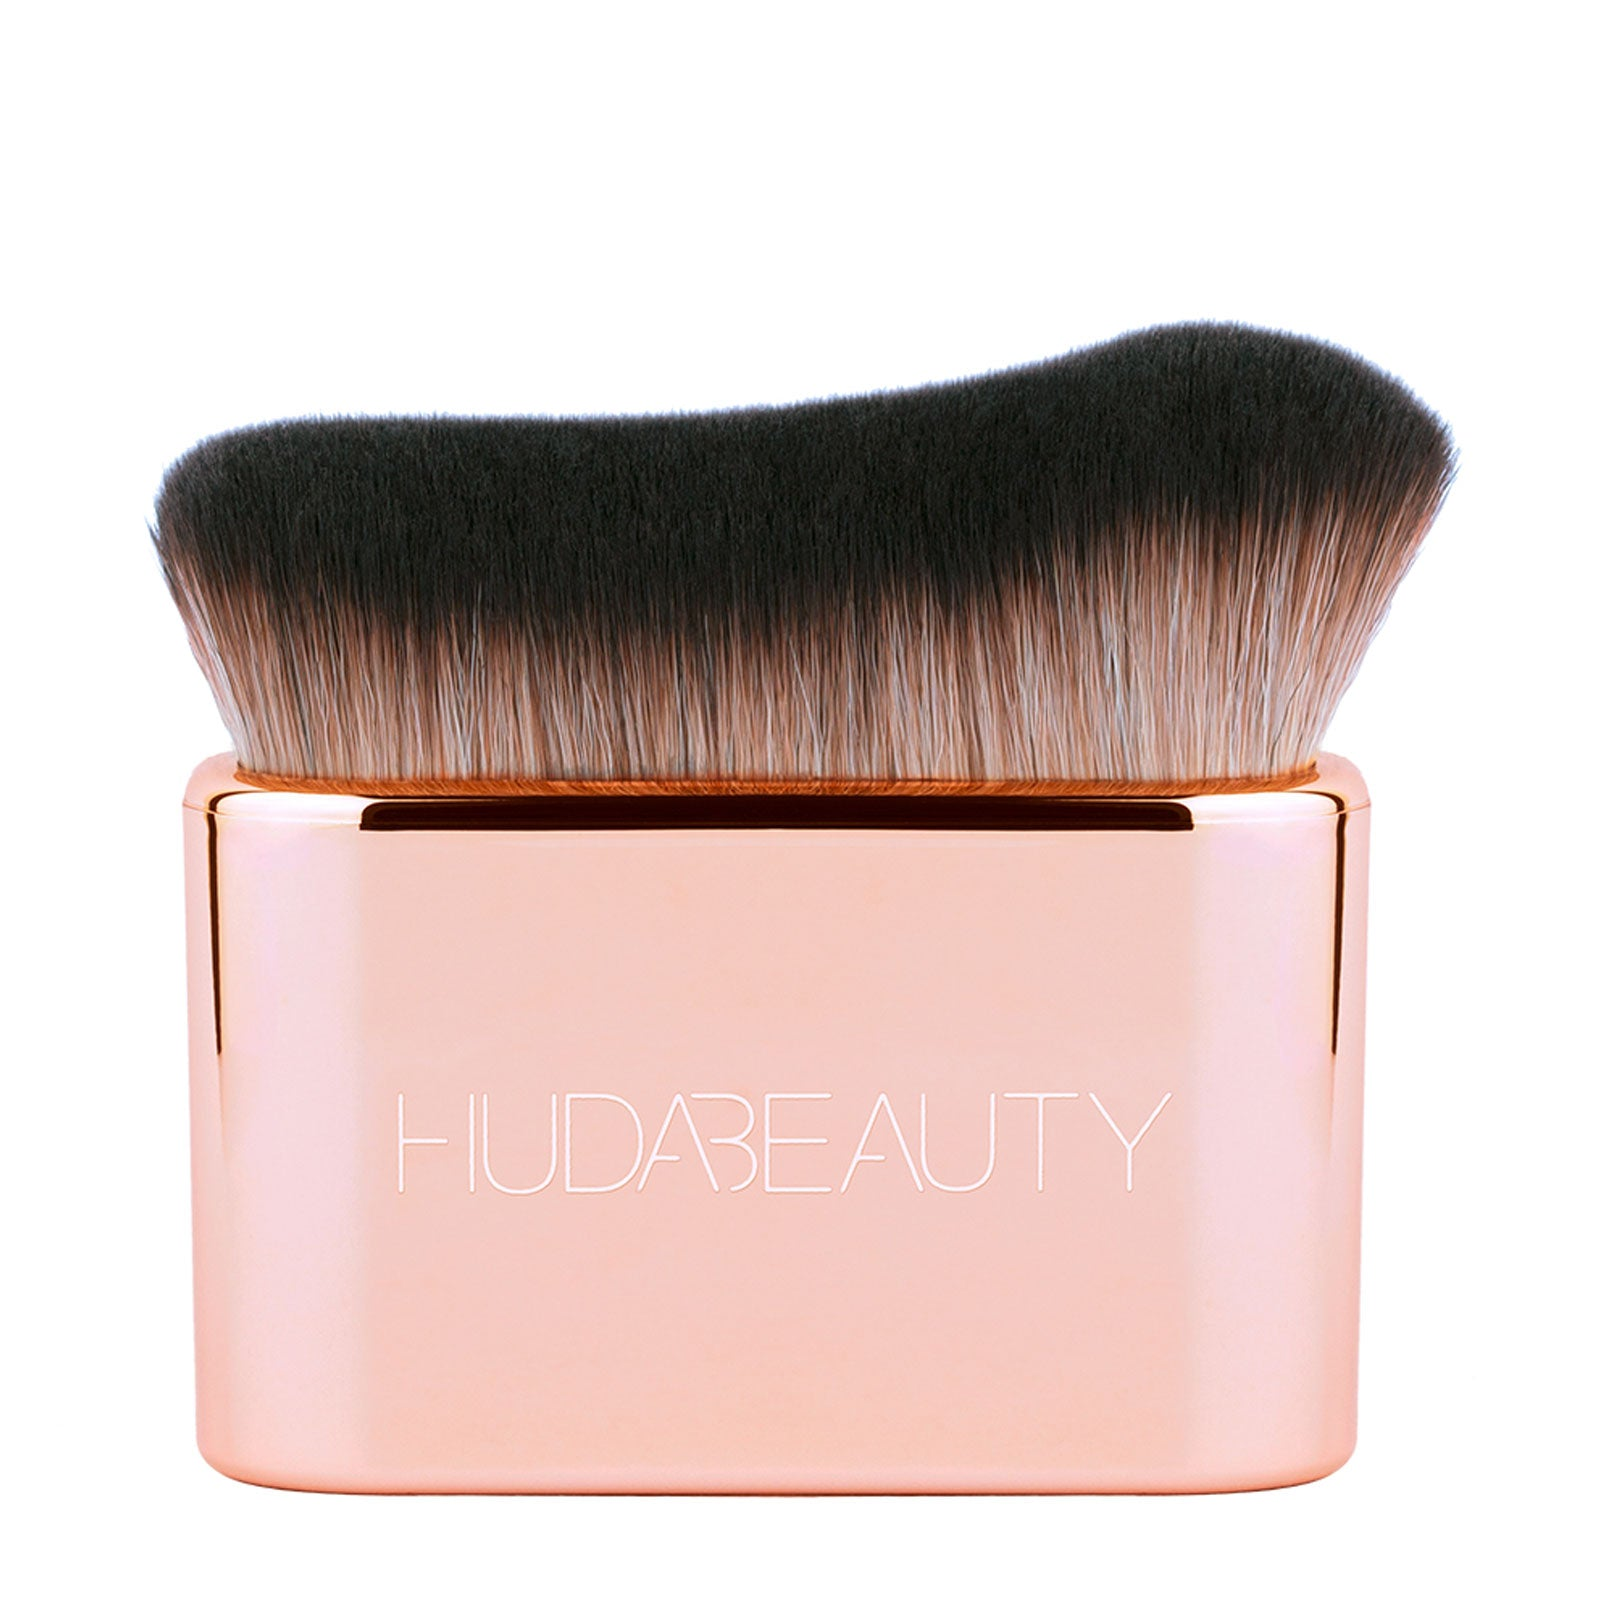 Huda Beauty Body Blur & Glow Brush